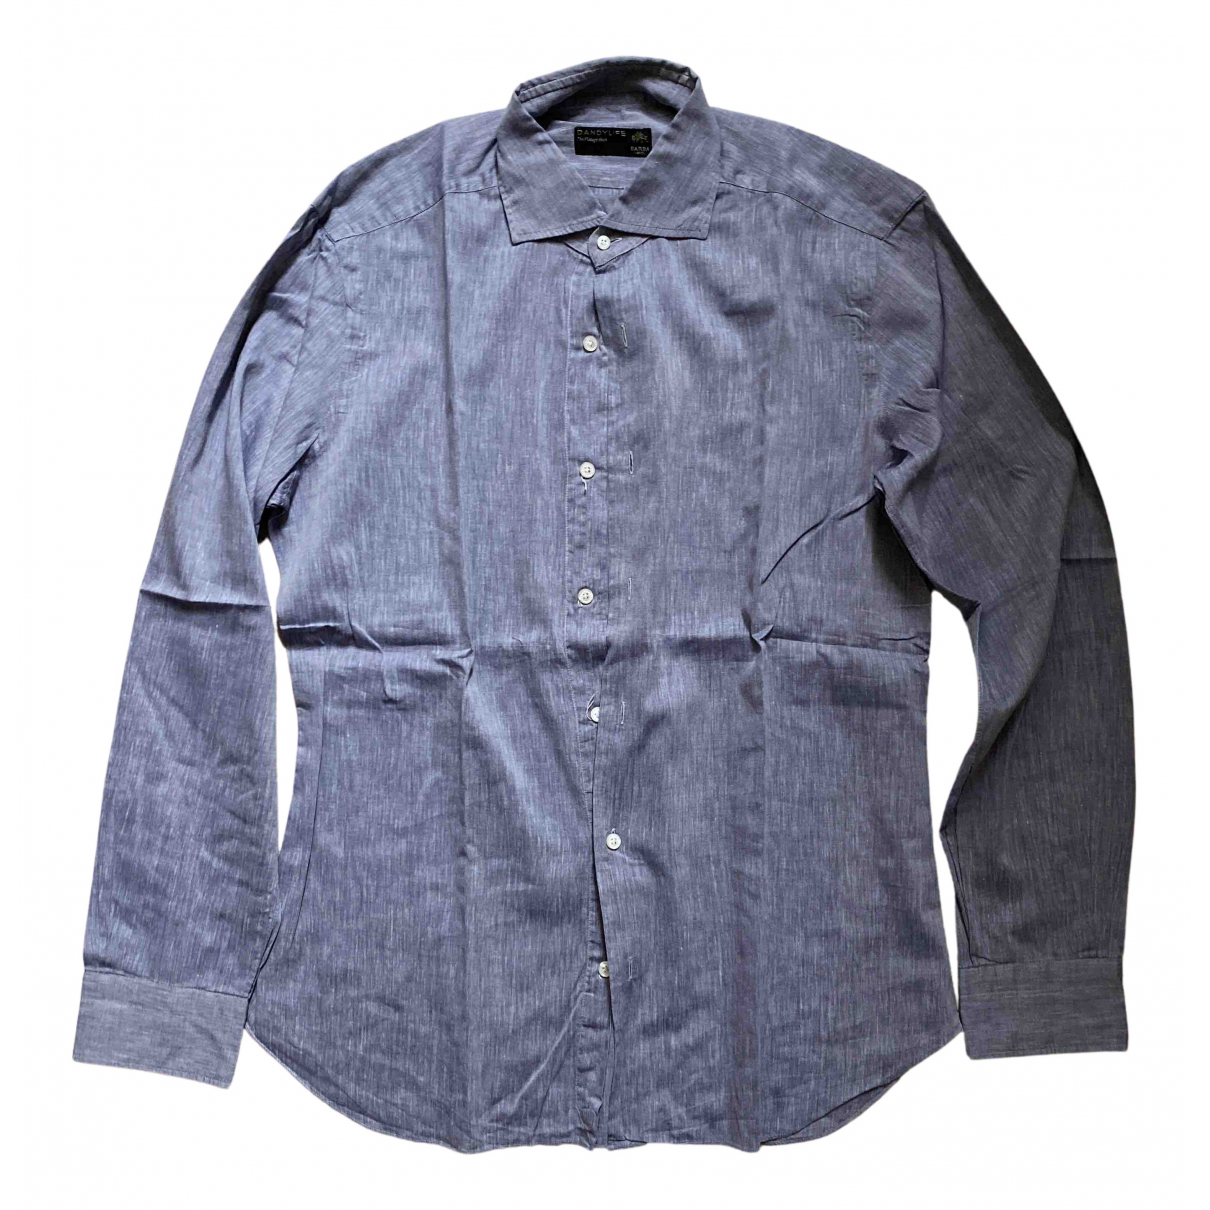 Barba N Cotton Shirts for Men 41 EU (tour de cou / collar)